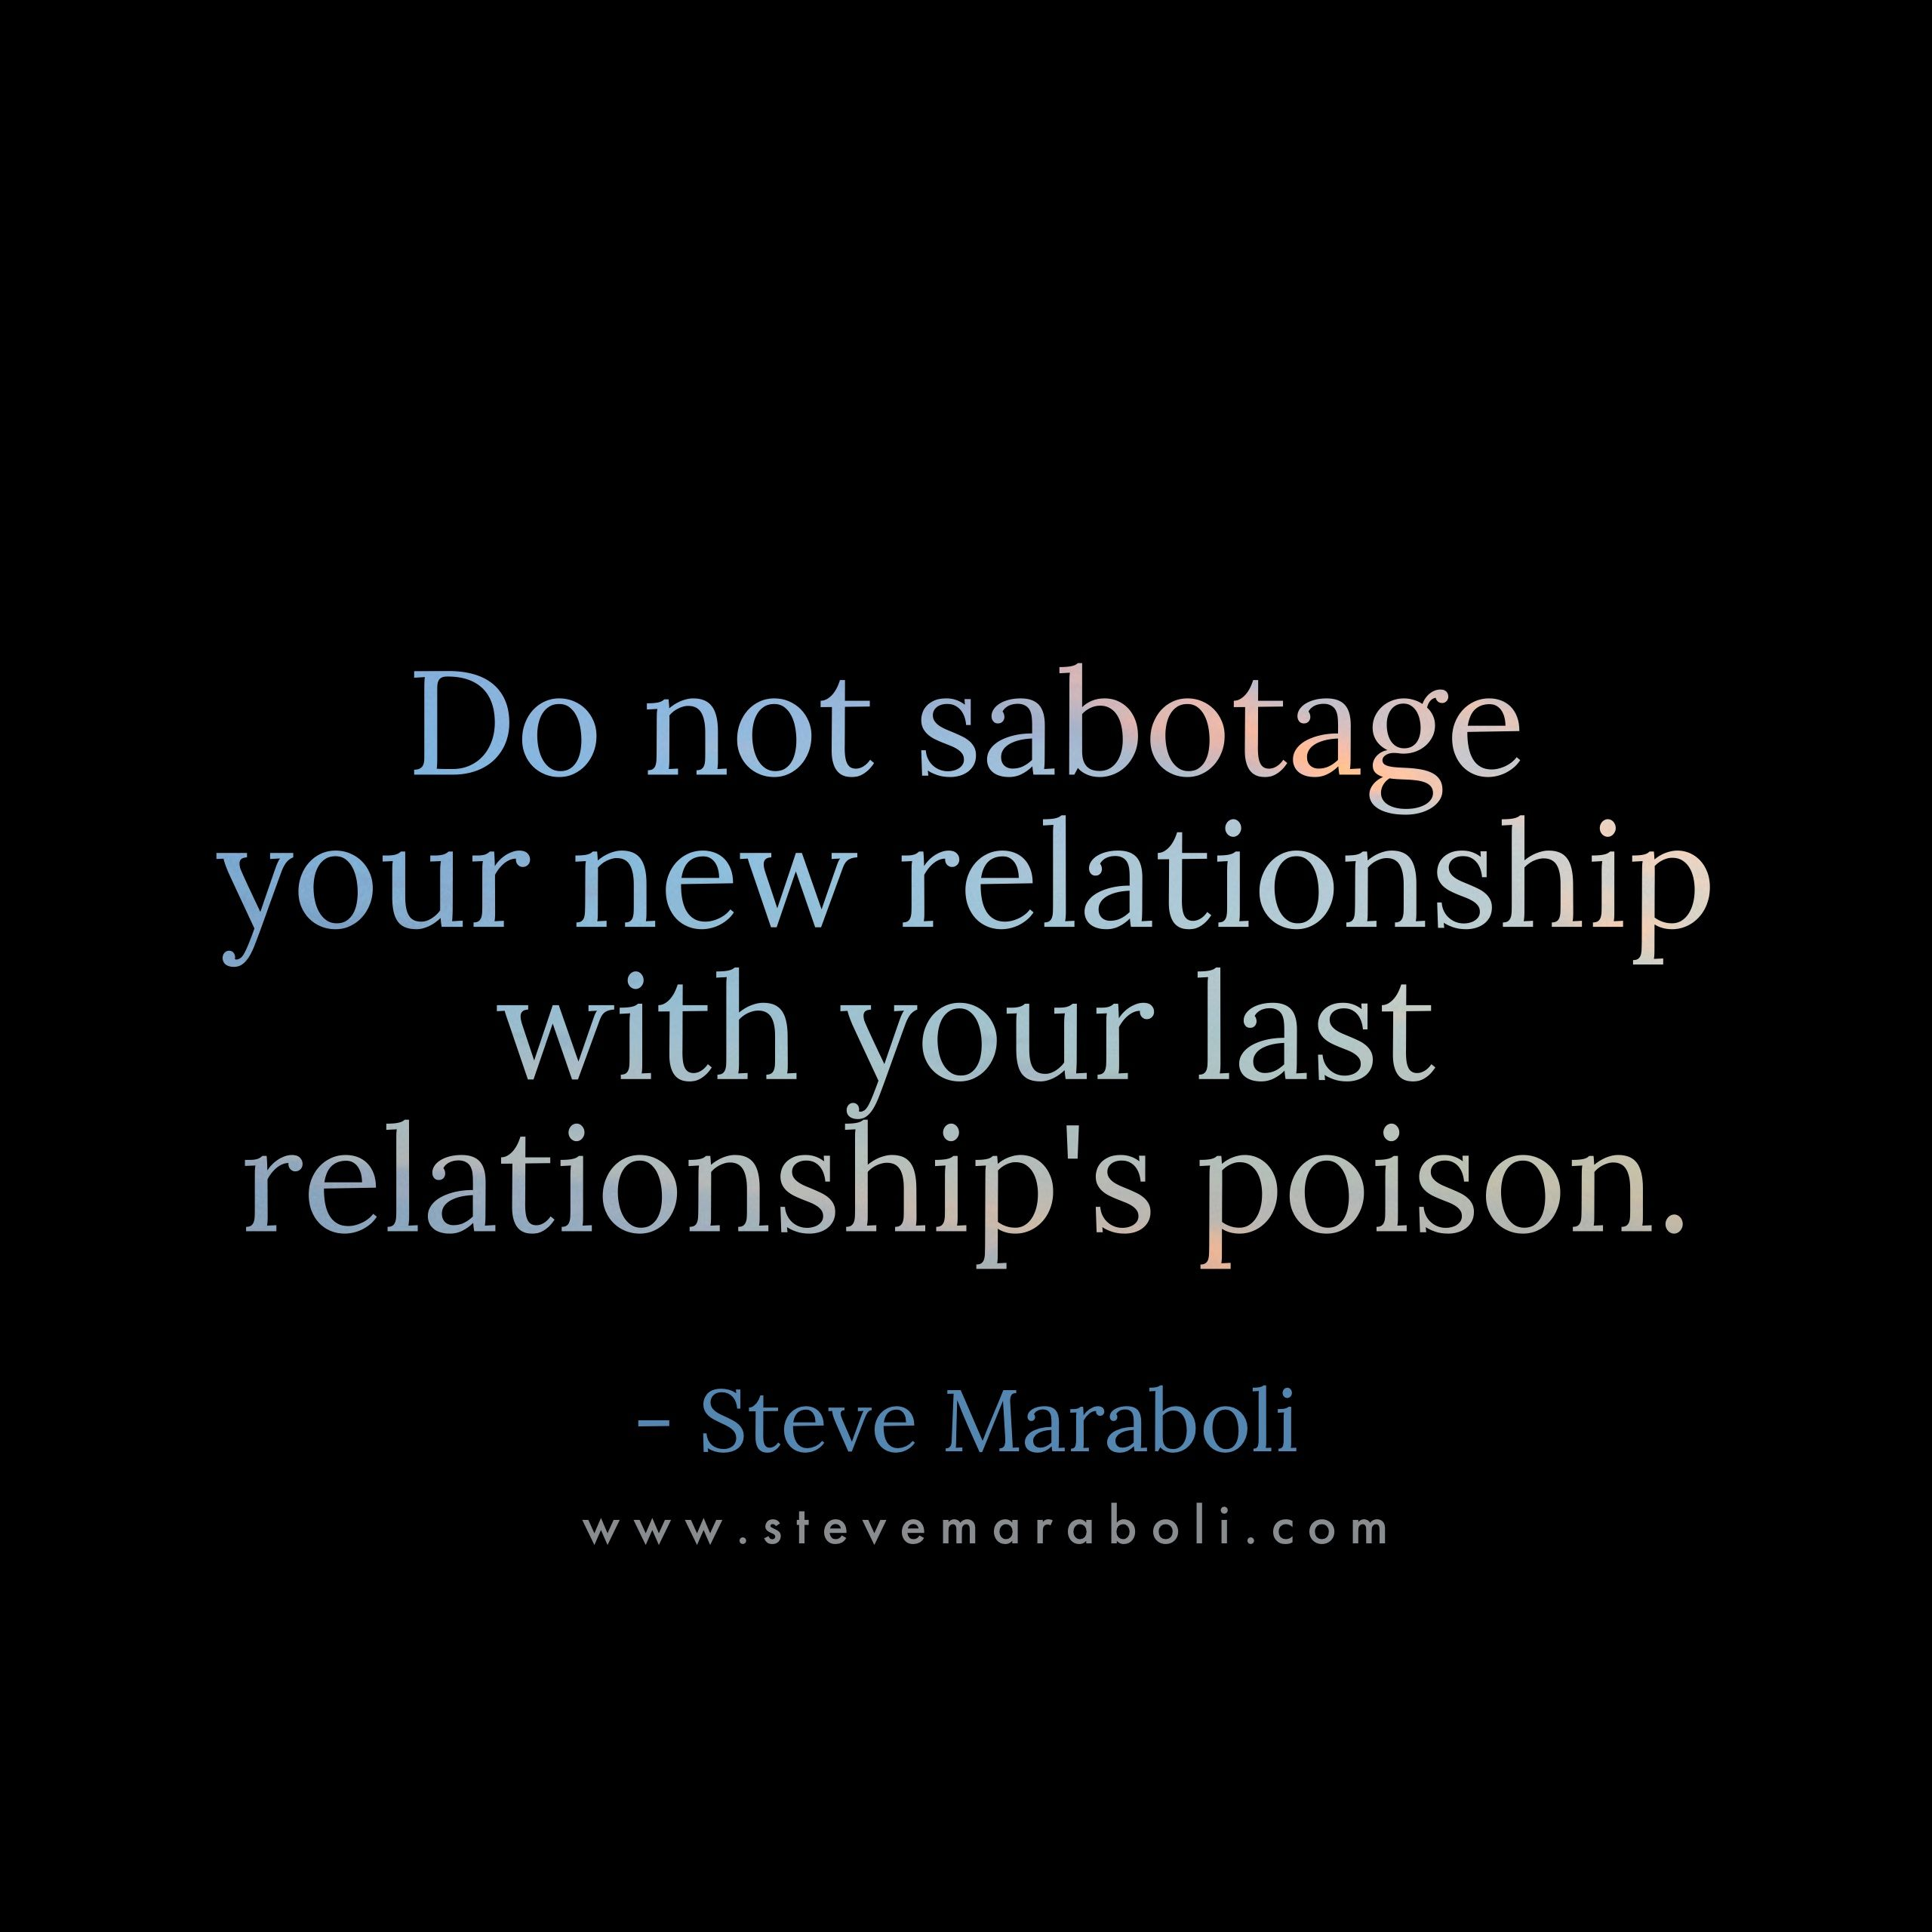 New Relationship Love Quotes: Do Not Sabotage Your New Relationship With Your Last